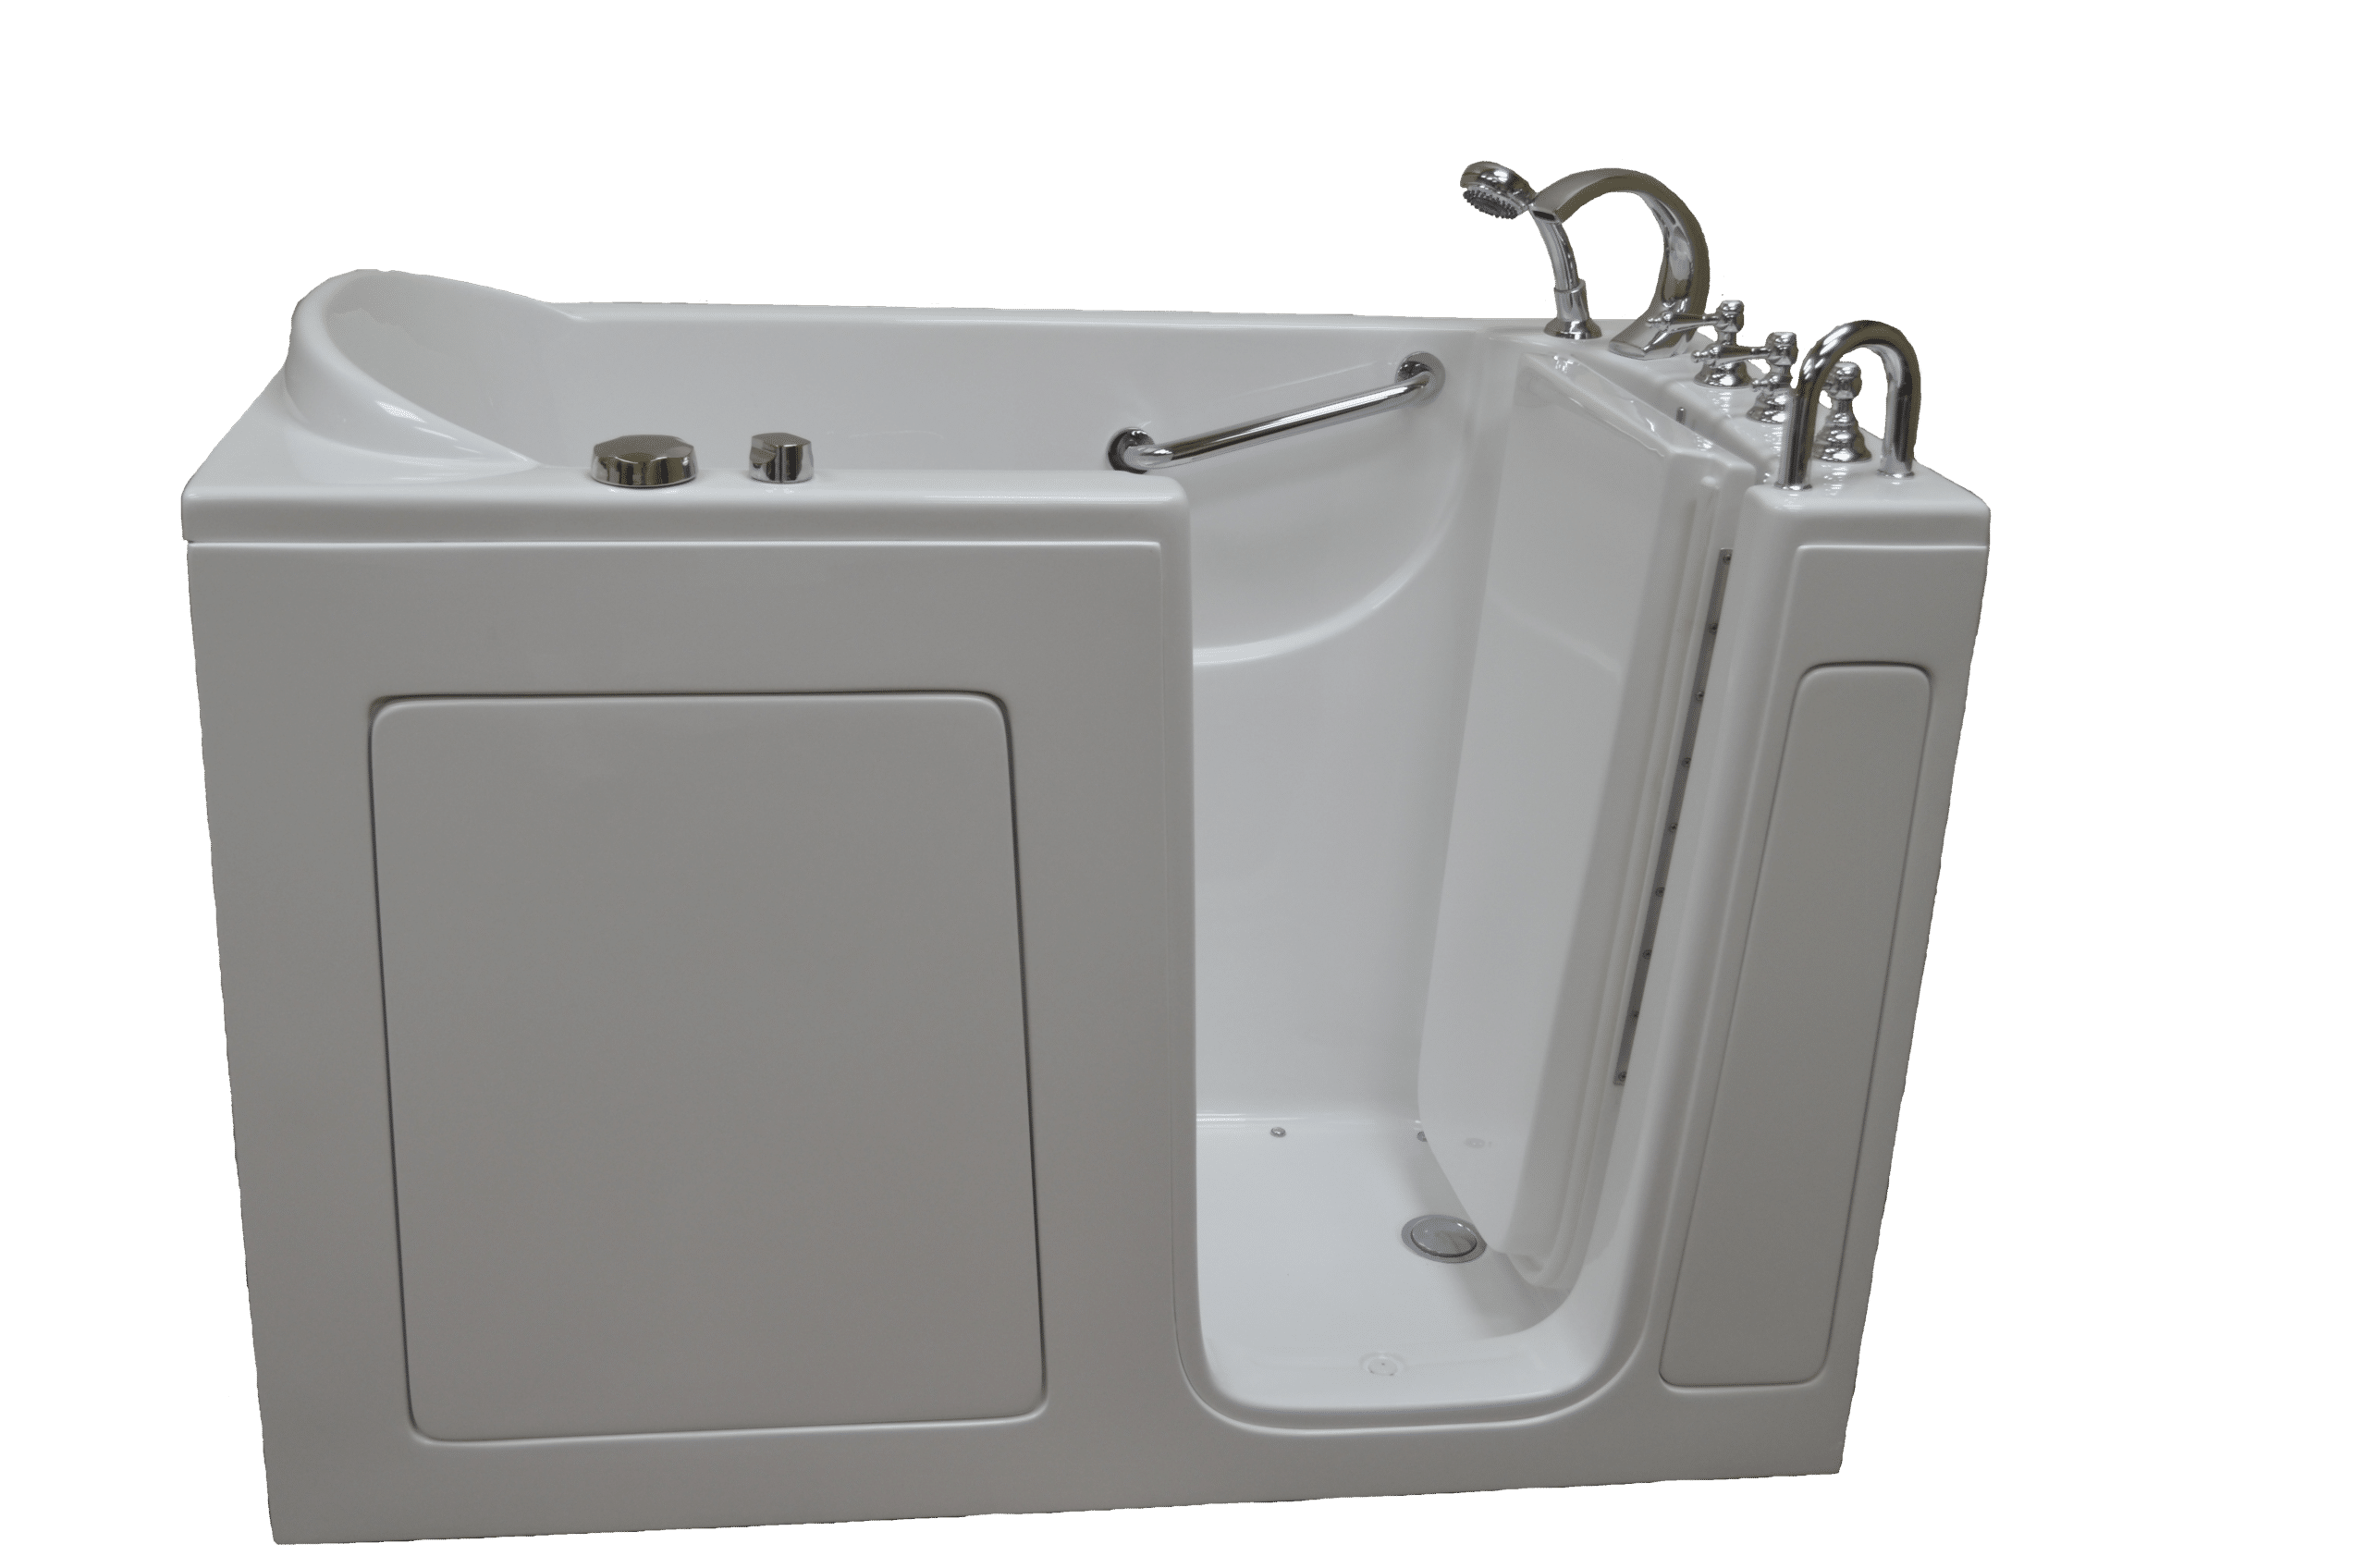 Superior Envy Discount Walk In Bath Tub Comparison And Installation Support